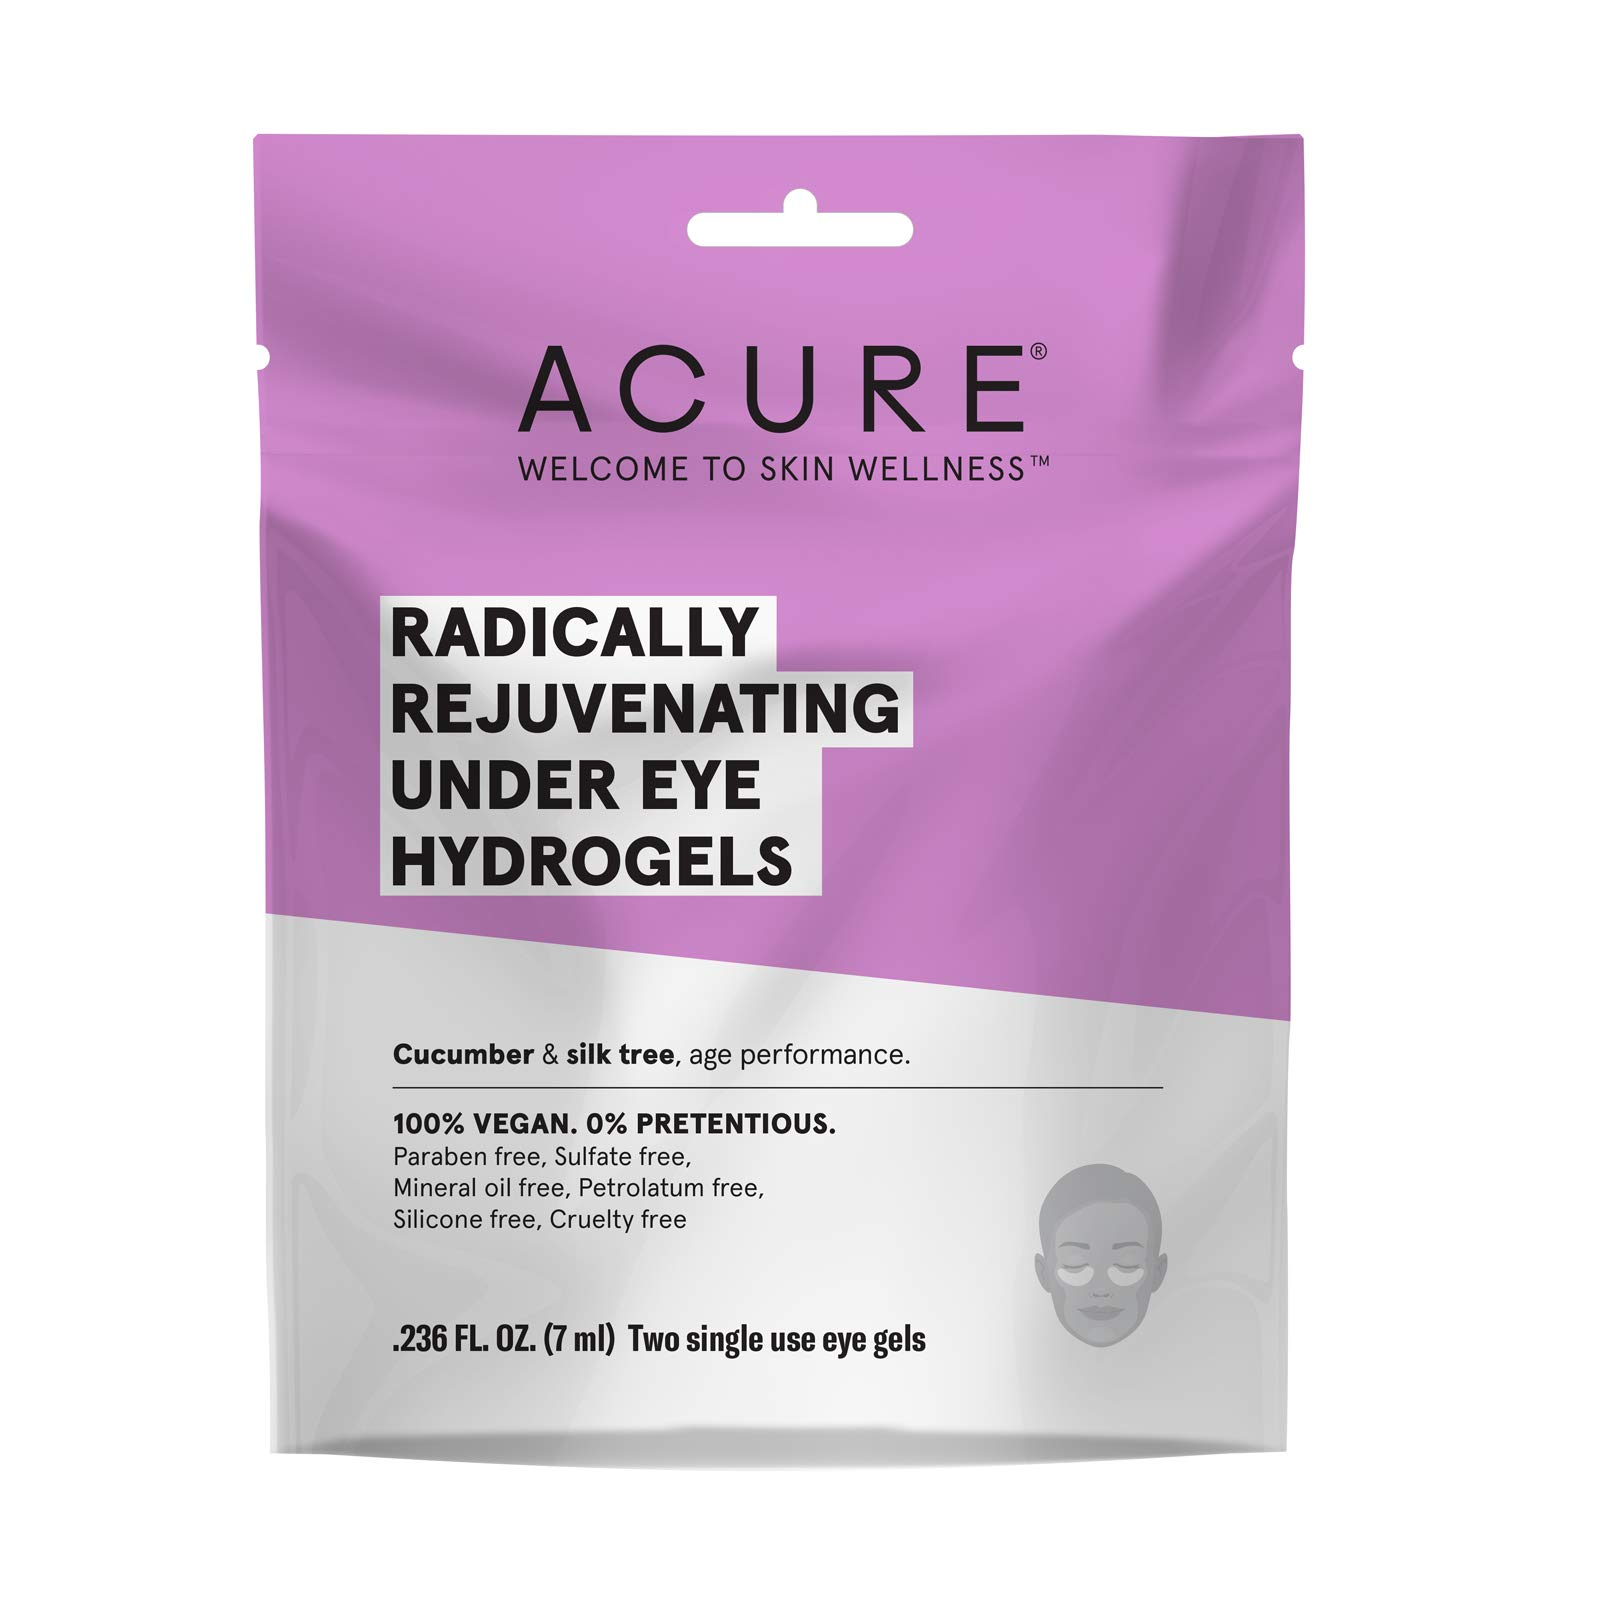 ACURE Radically Rejuvenating Under Eye Hydrogel Mask | 100% Vegan | Provides Anti-Aging Support | Cucumber & Silk Tree - Hydrates & Rejuvenates | 12 Count by Acure